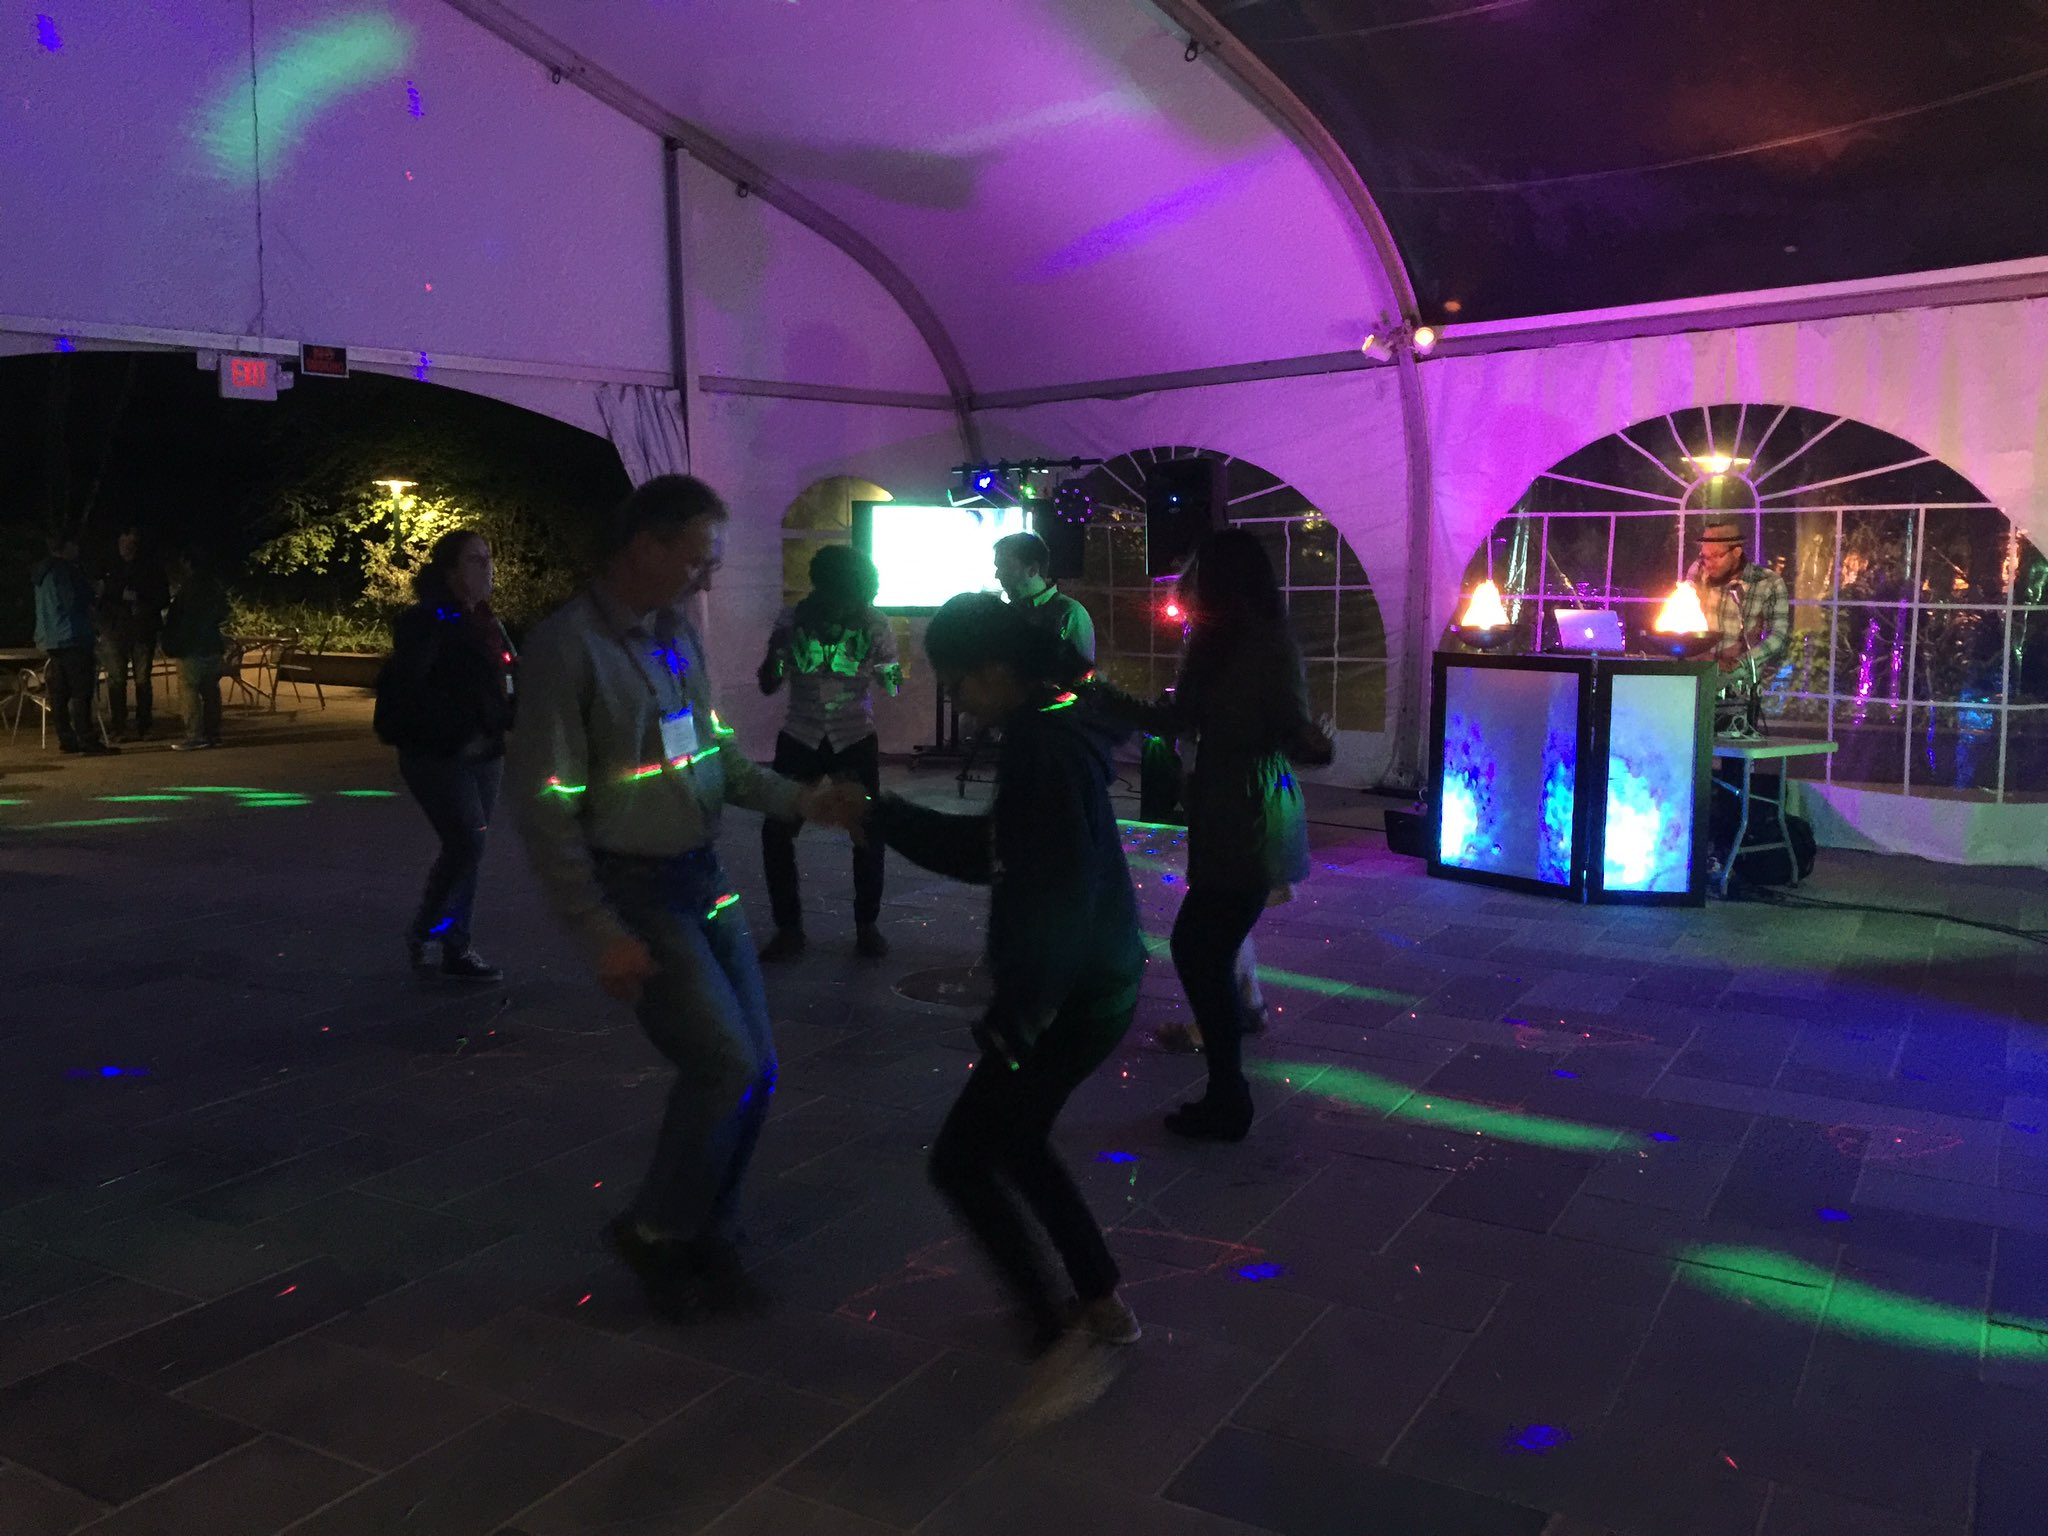 The DJ is playing and the dancing has started   #bog17 https://t.co/rjZP1YgndH